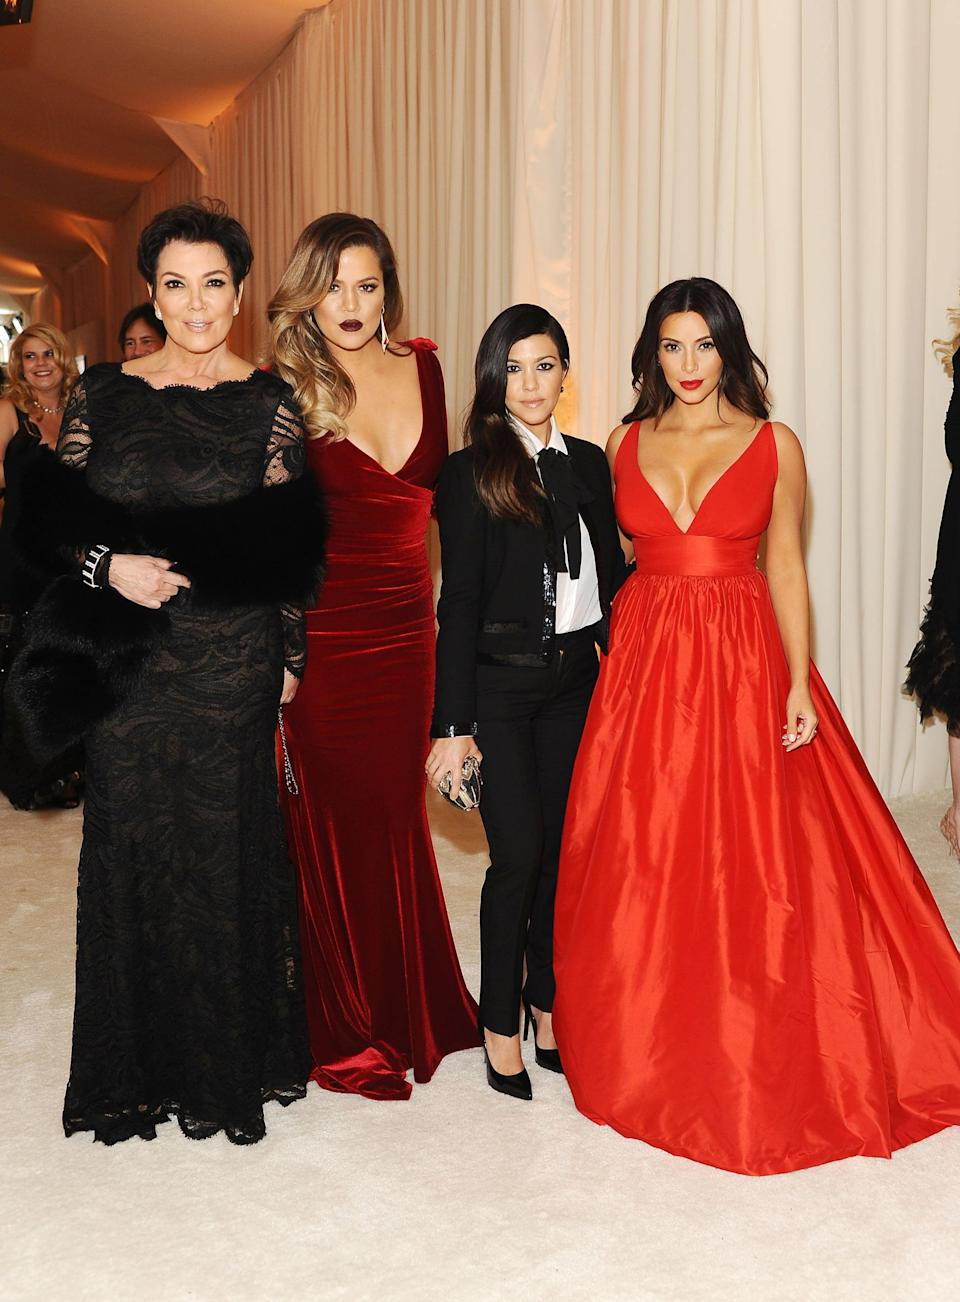 <p>2014 was also the year where the family received an invitation to Elton John's Oscar party wearing gowns with plunging necklines and pantsuits. </p>